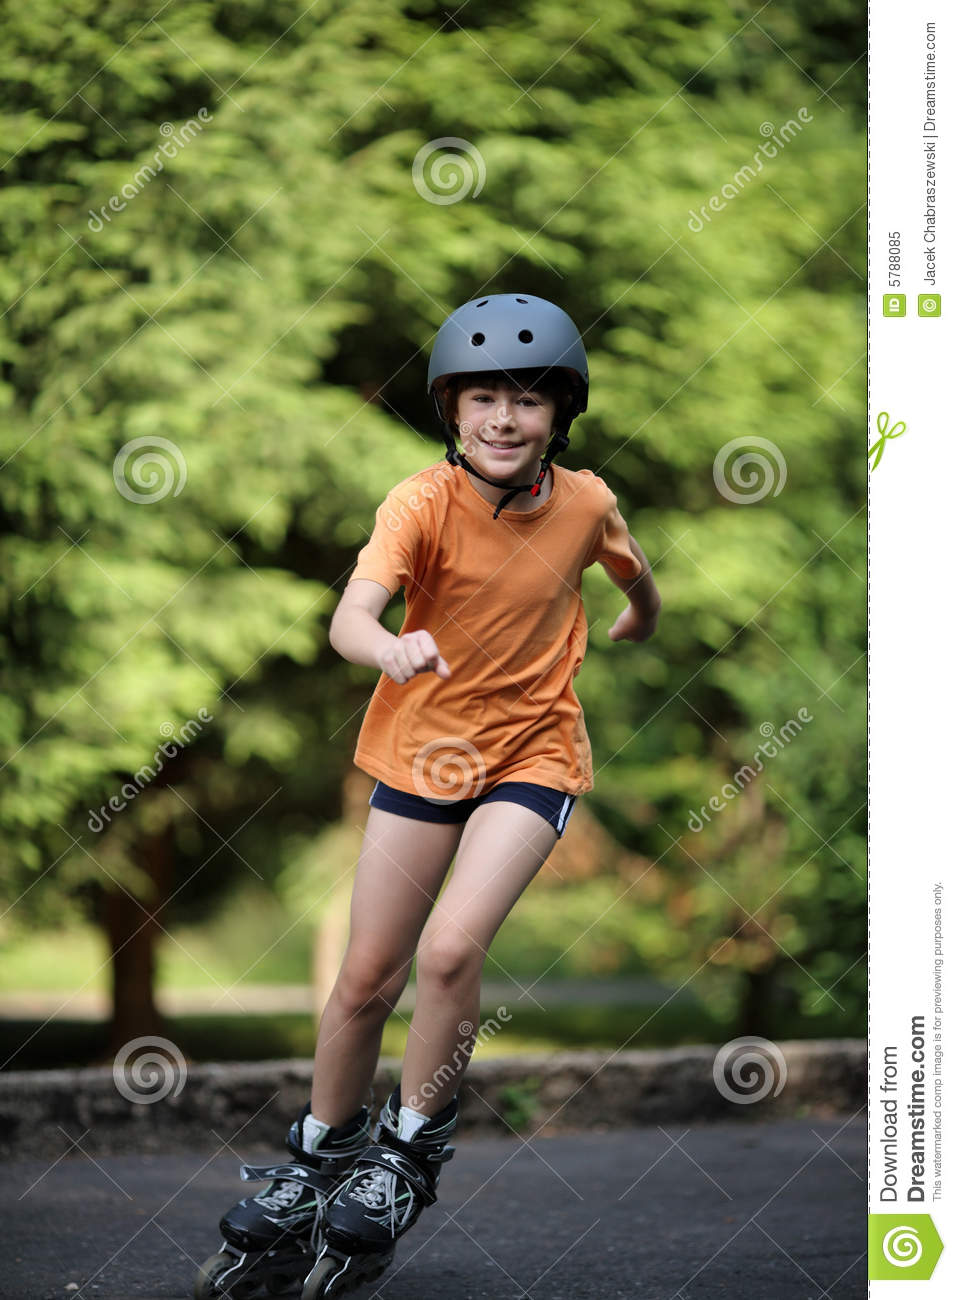 Girl on rollerblades